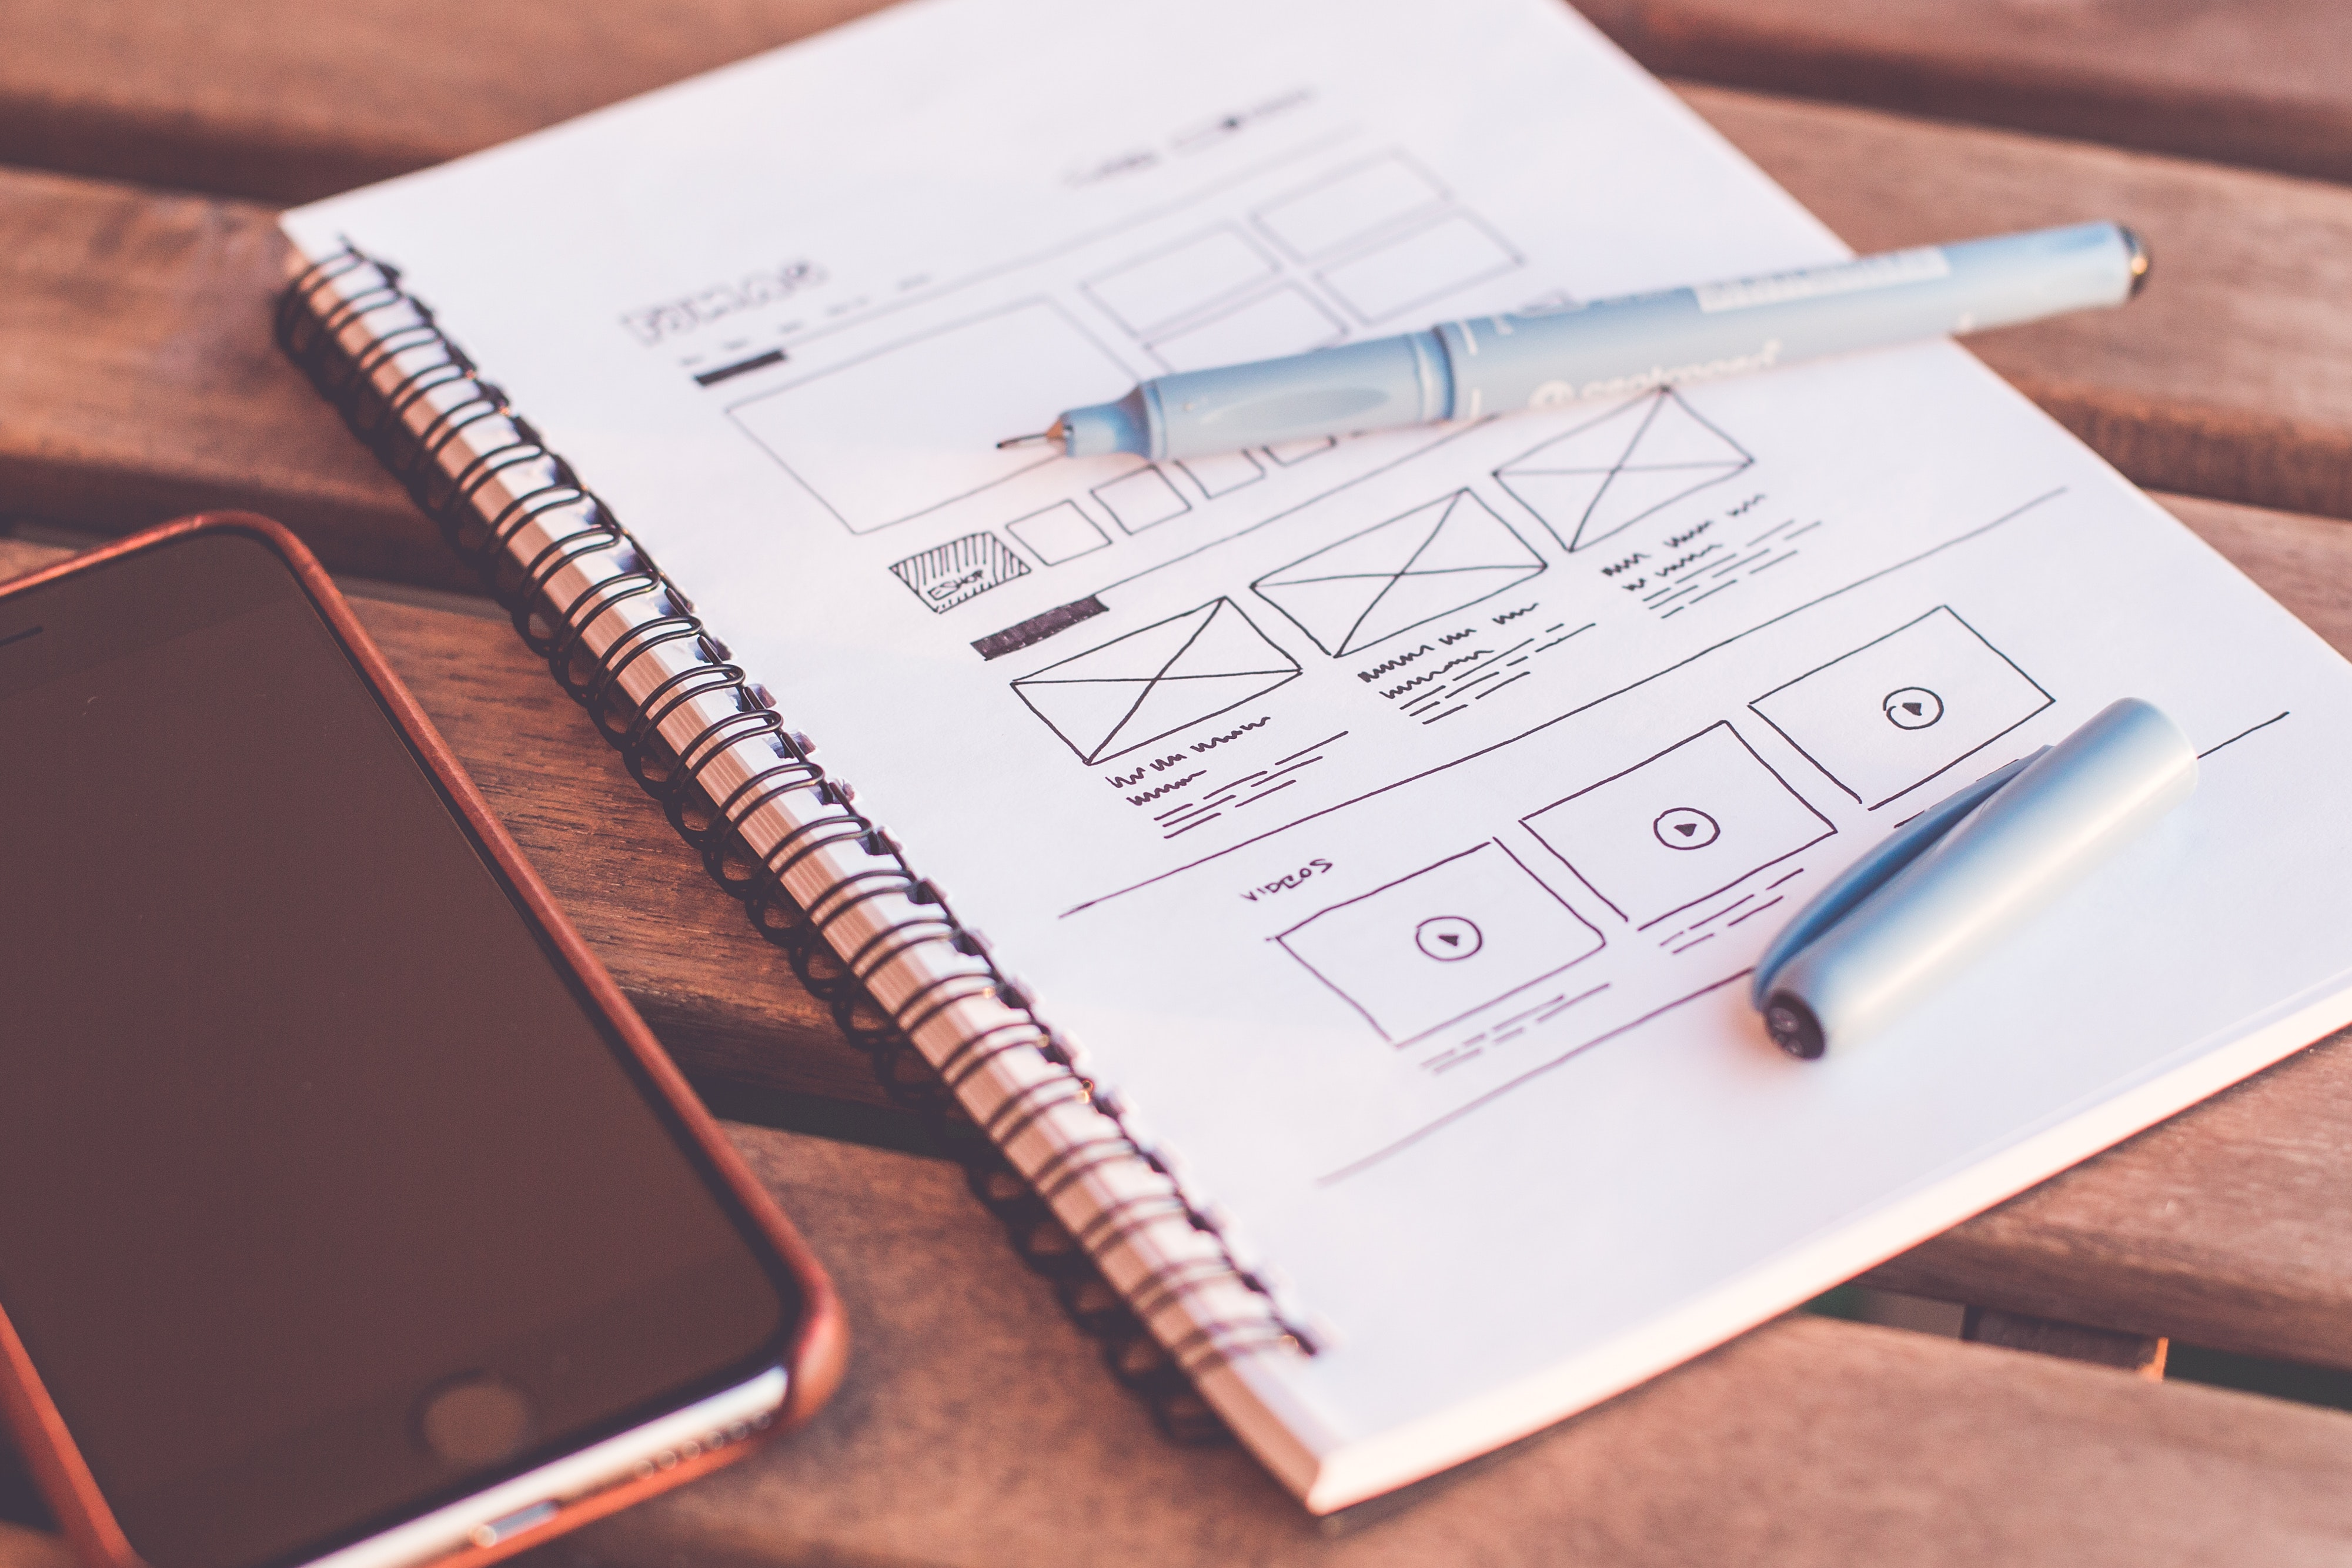 DIY vs Professional: Why hire a web design agency?